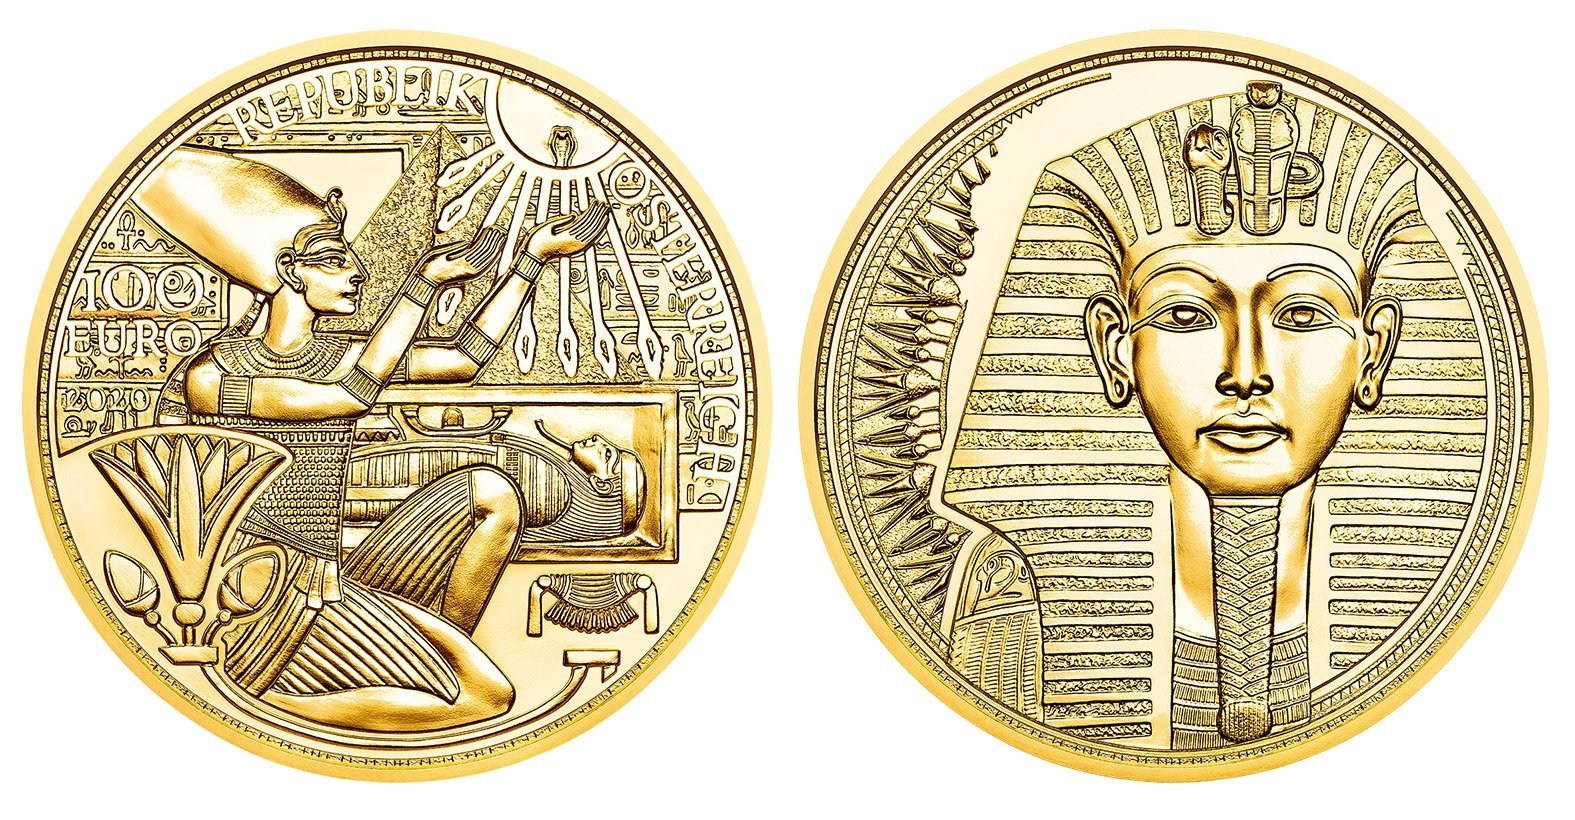 (EUR01.ComBU&BE.2020.10000.BE.24609) 100 euro Austria 2020 Proof gold - Gold of the Pharaohs (zoom)